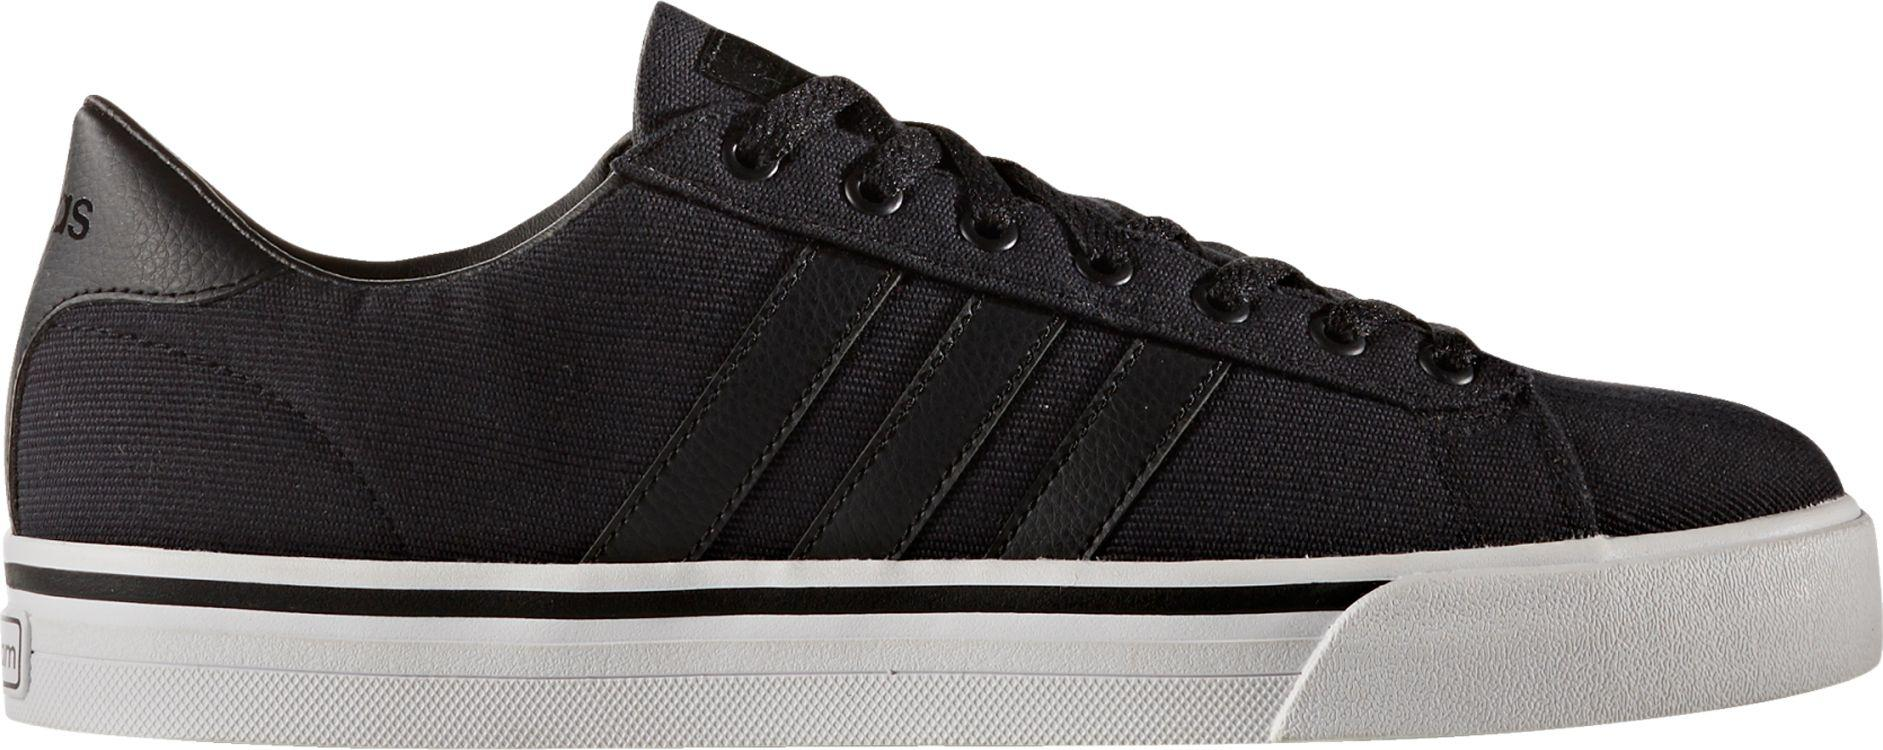 0436234f35cd Lyst - Adidas Cloudfoam Super Daily Shoes in Black for Men